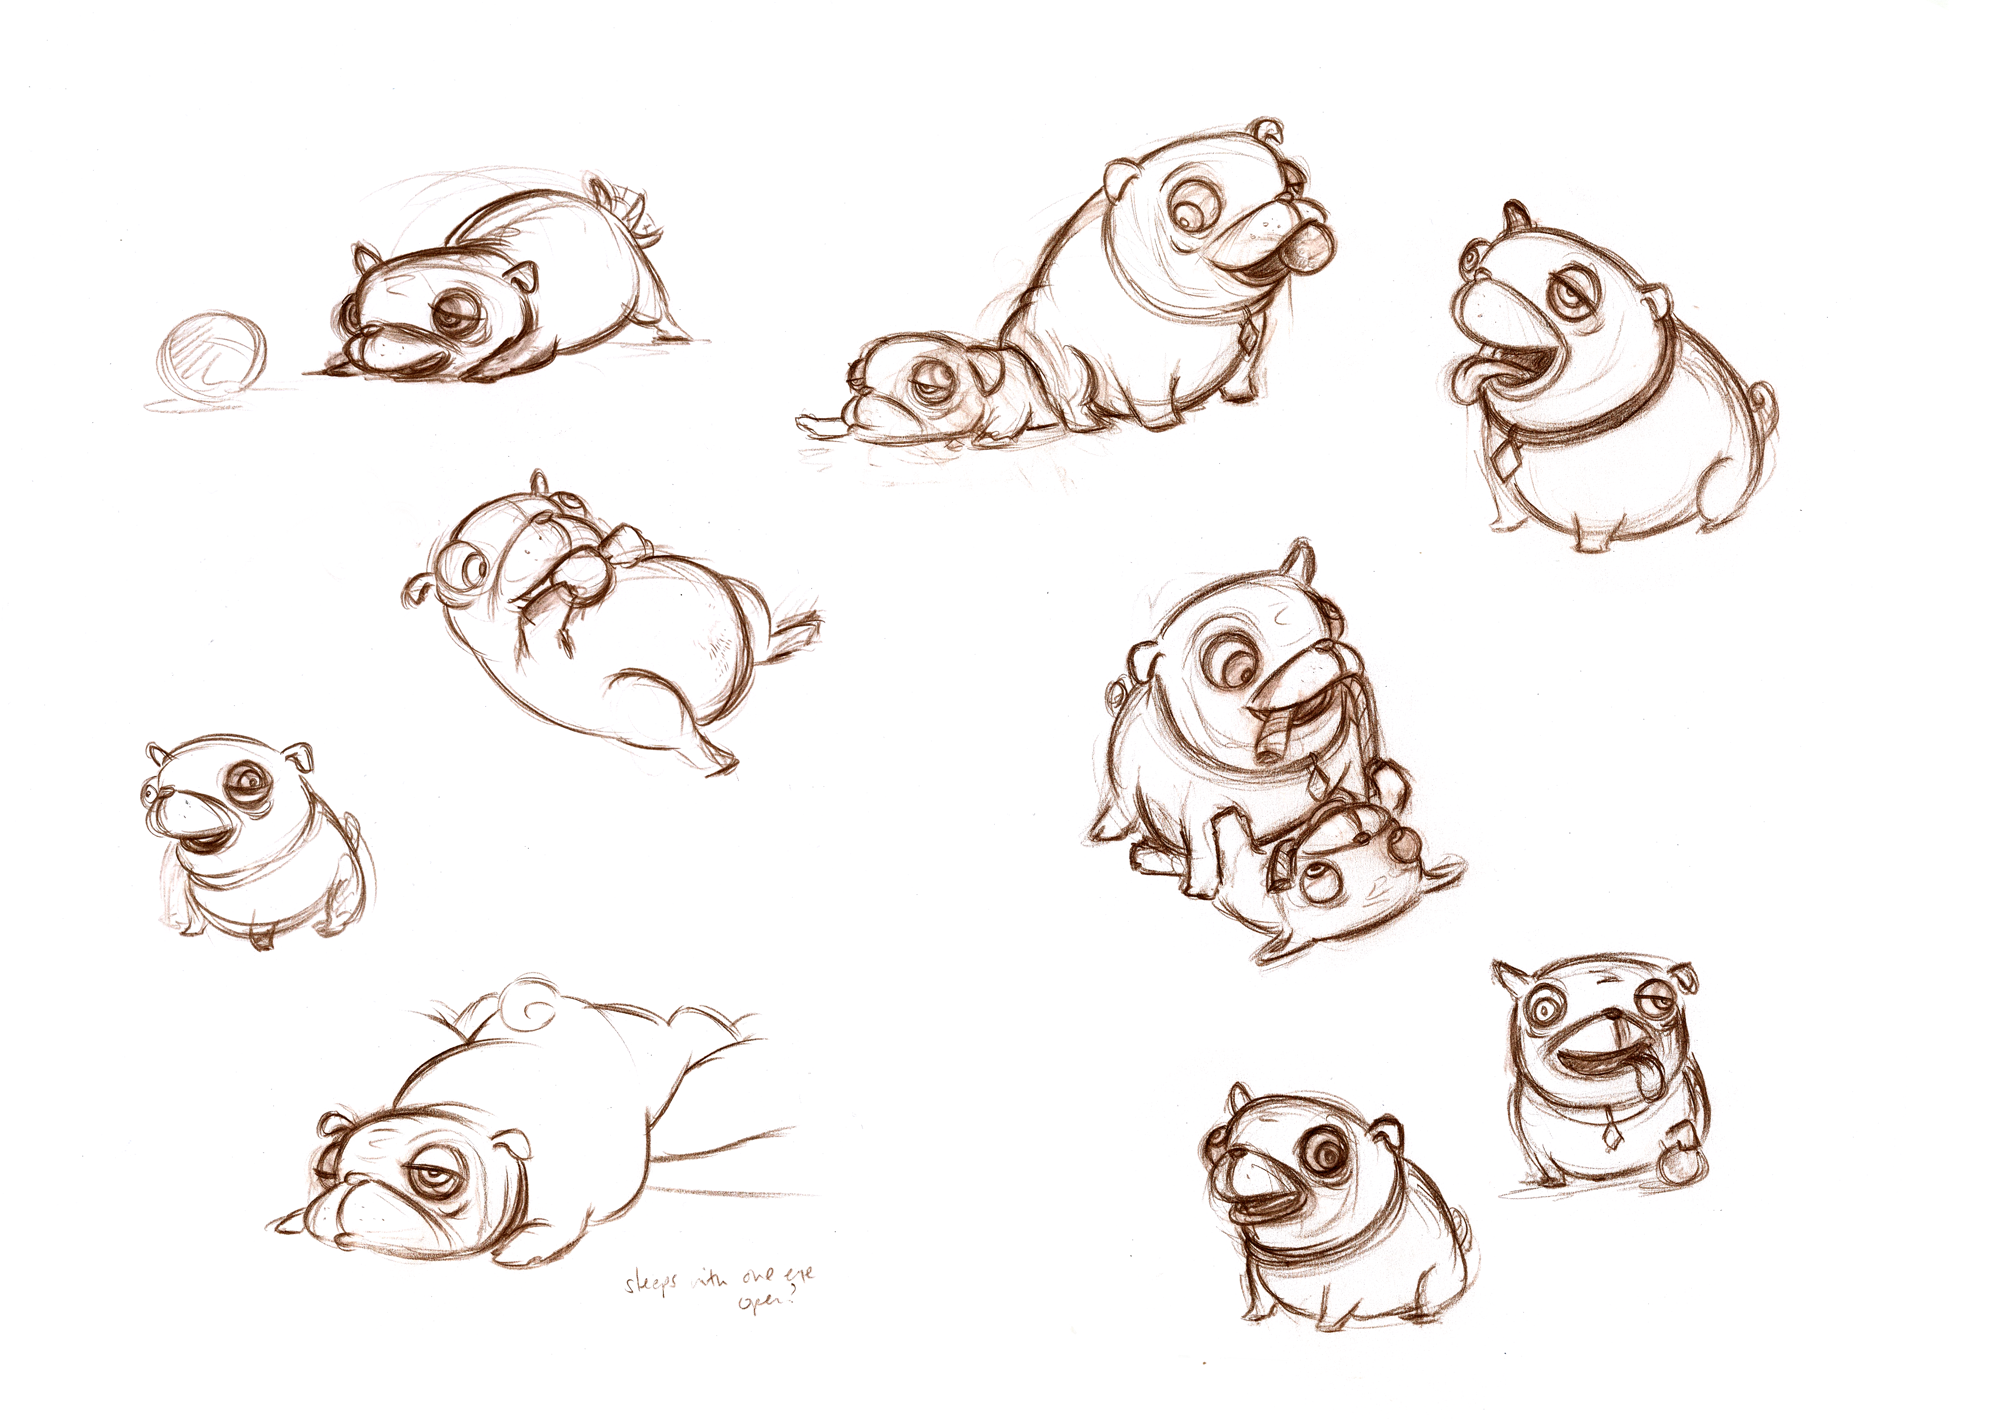 Disney_PugConcepts_05